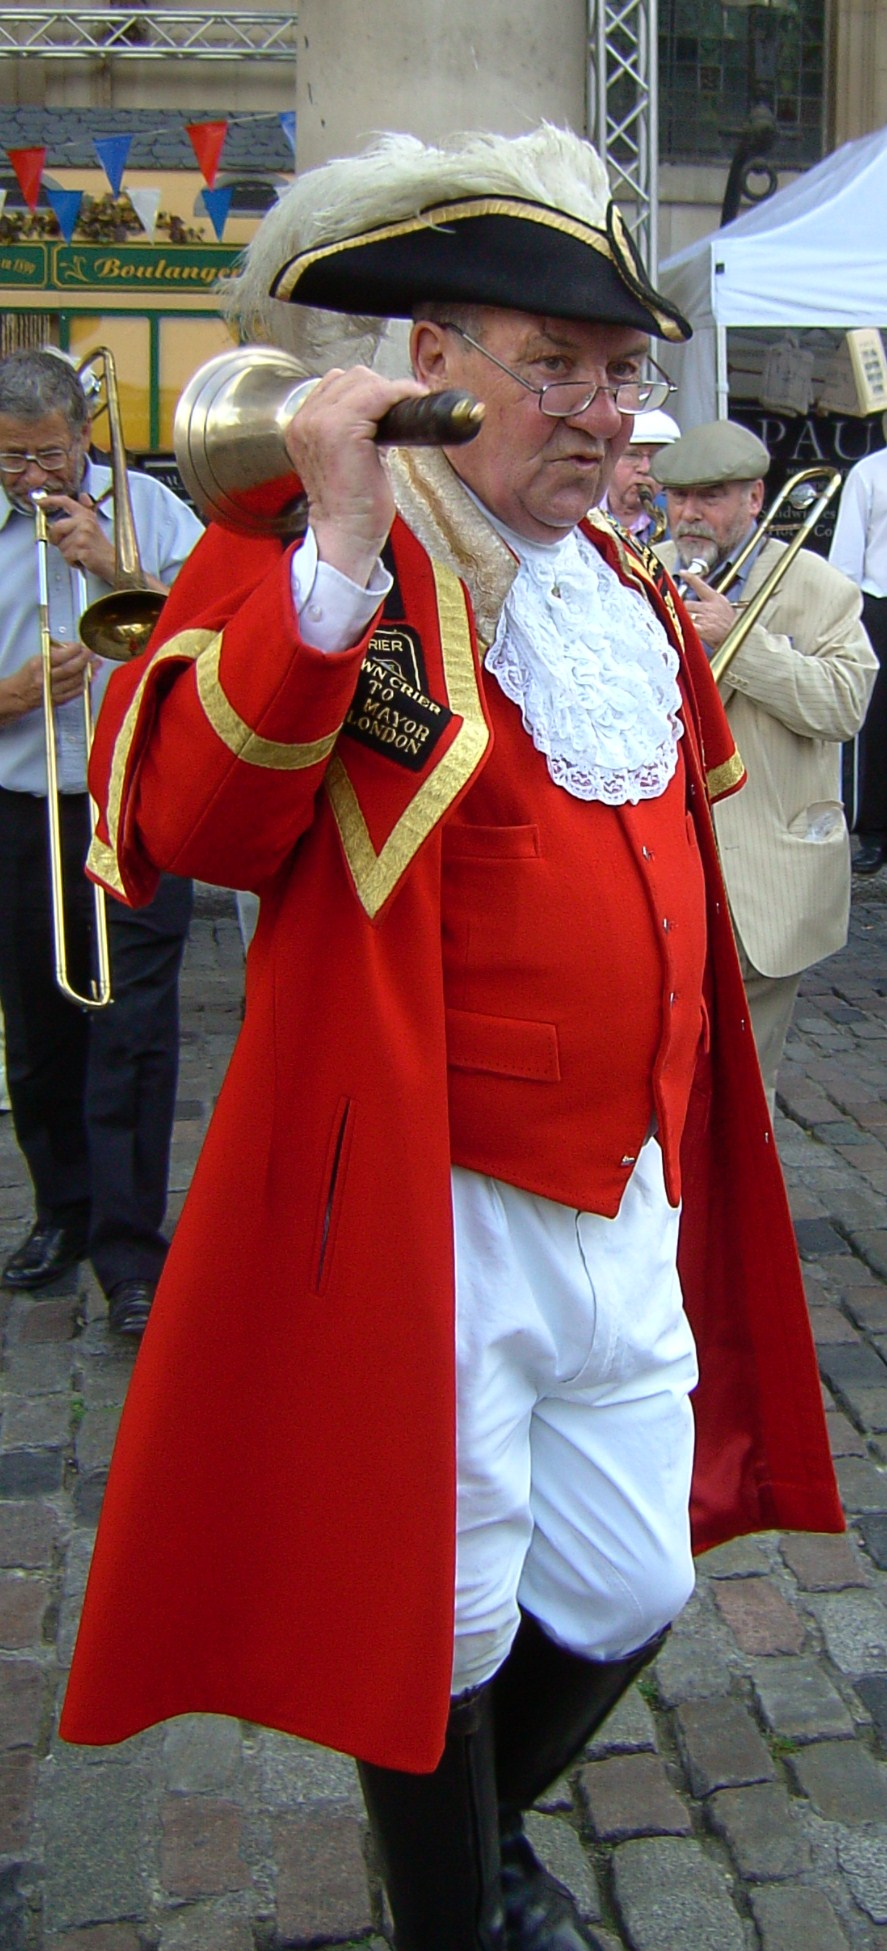 Pete Moore, Town Crier to the Mayor of London